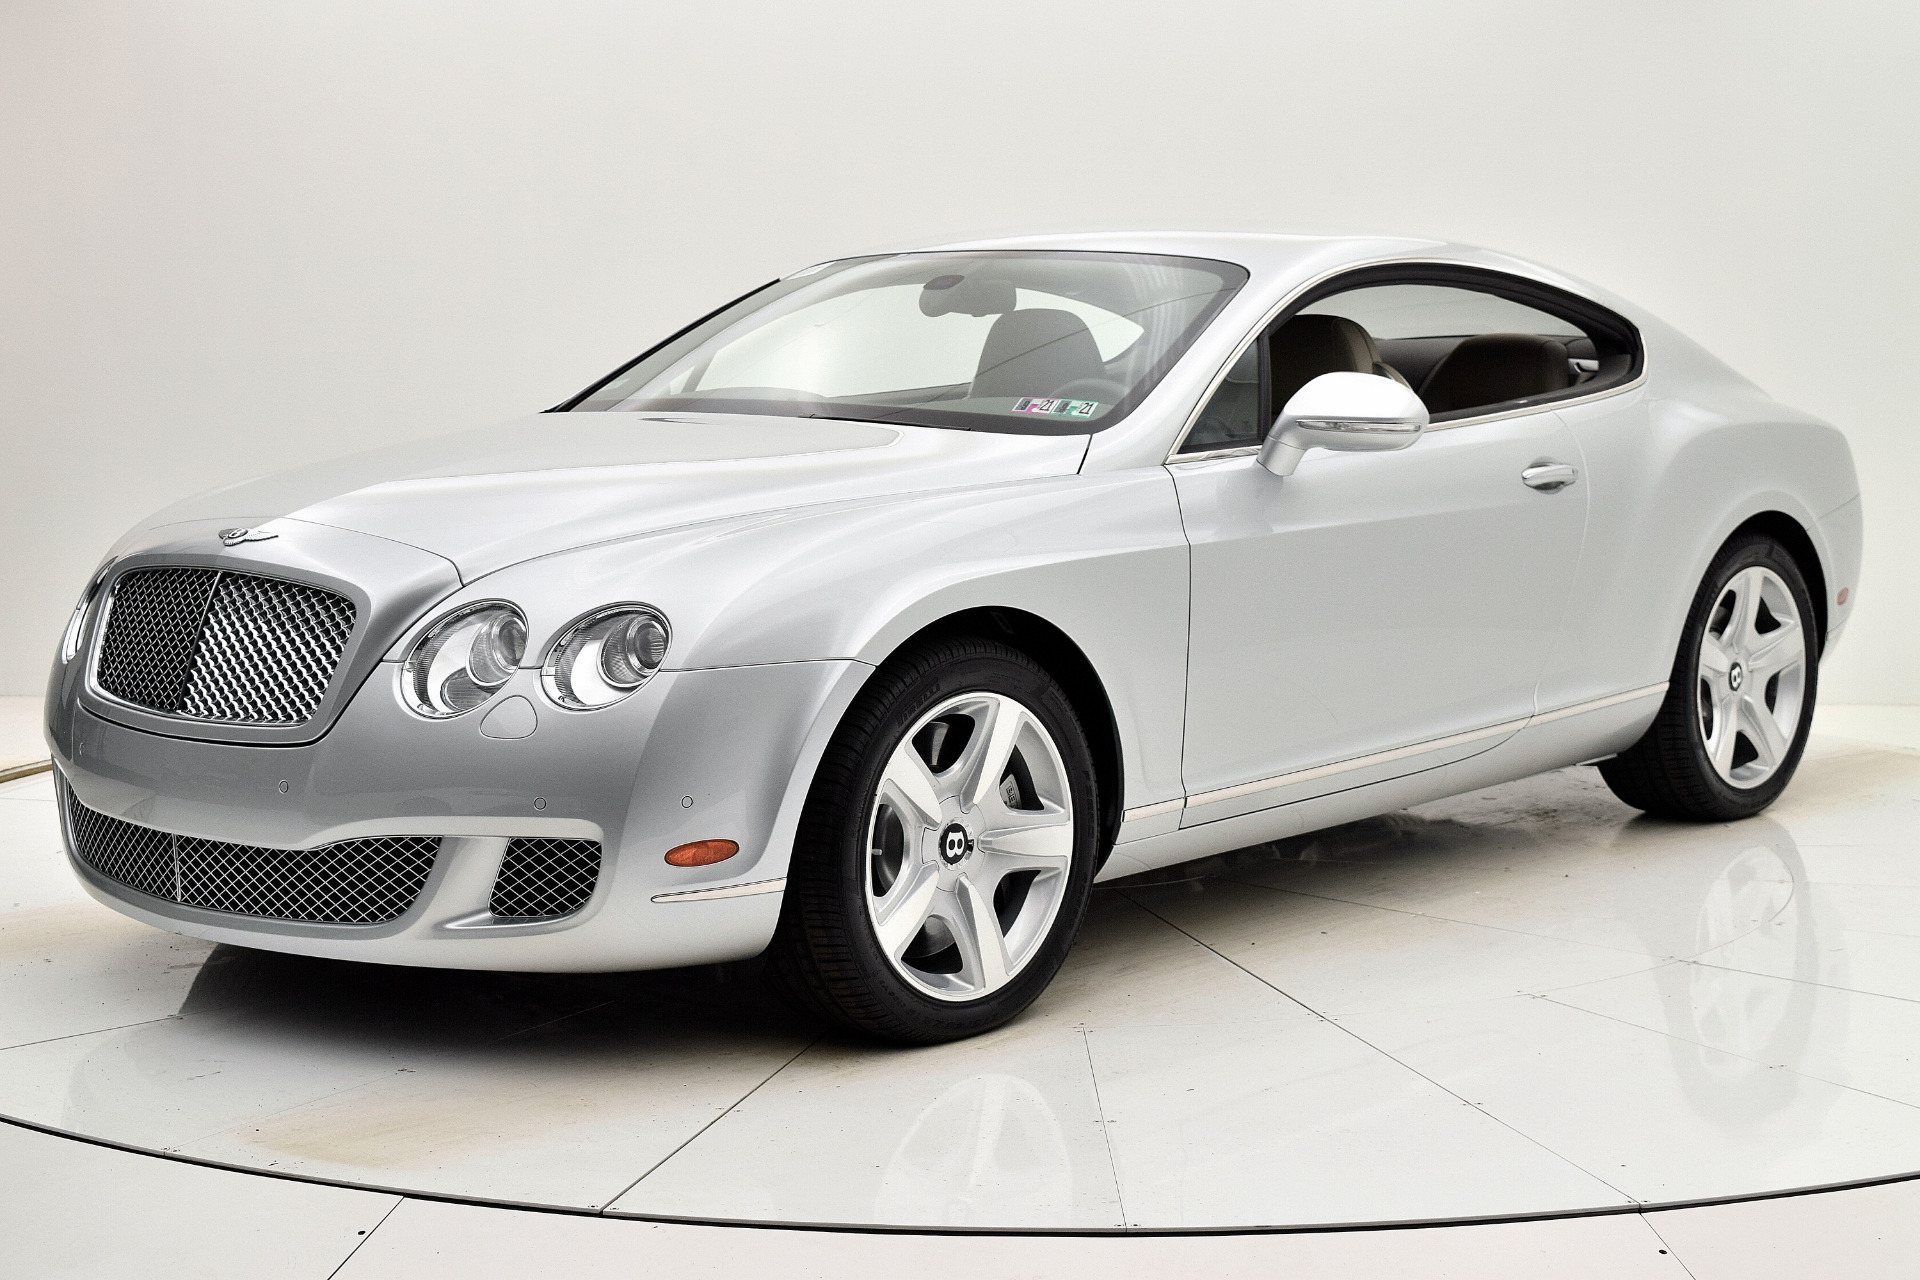 Used 2010 Bentley Continental GT Coupe for sale Sold at Bentley Palmyra N.J. in Palmyra NJ 08065 2